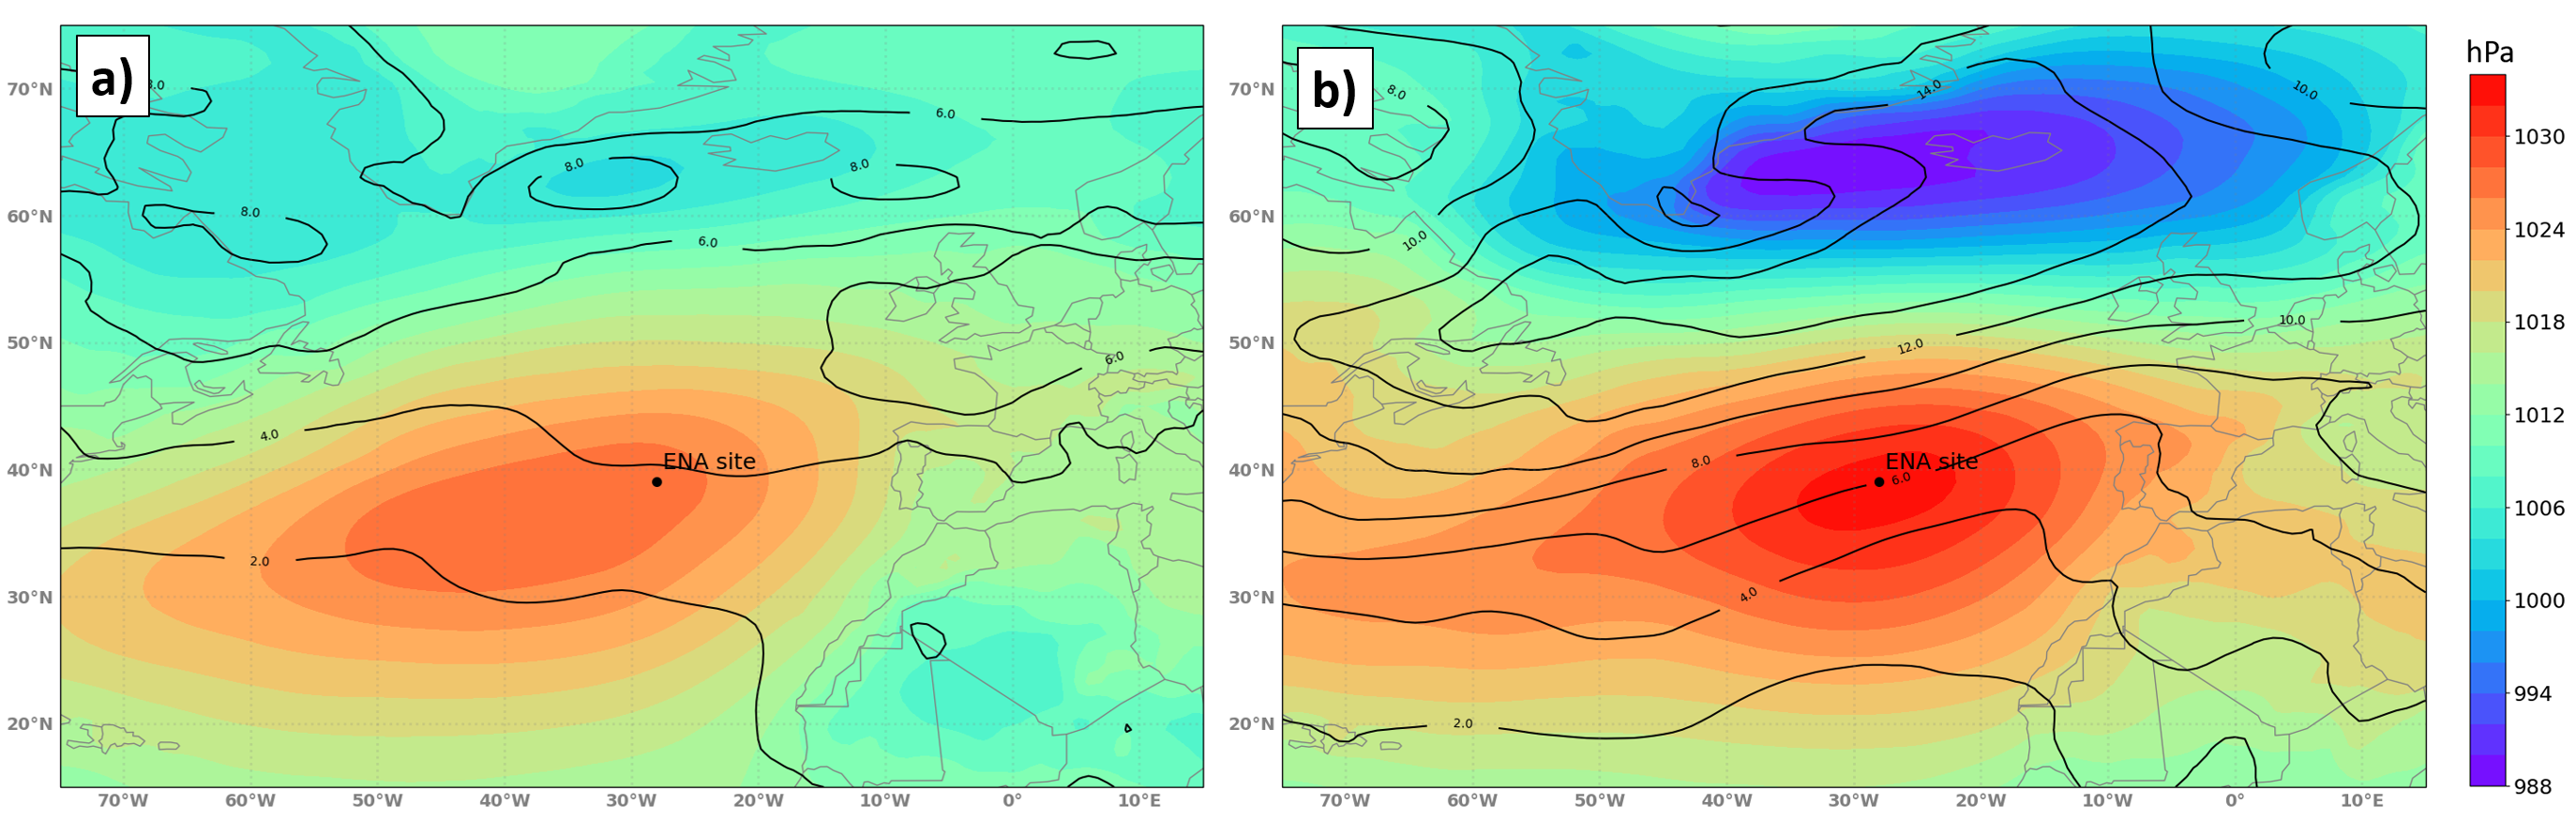 Average mean sea level pressure (MSLP) and standard deviation of MSLP across ACE-ENA